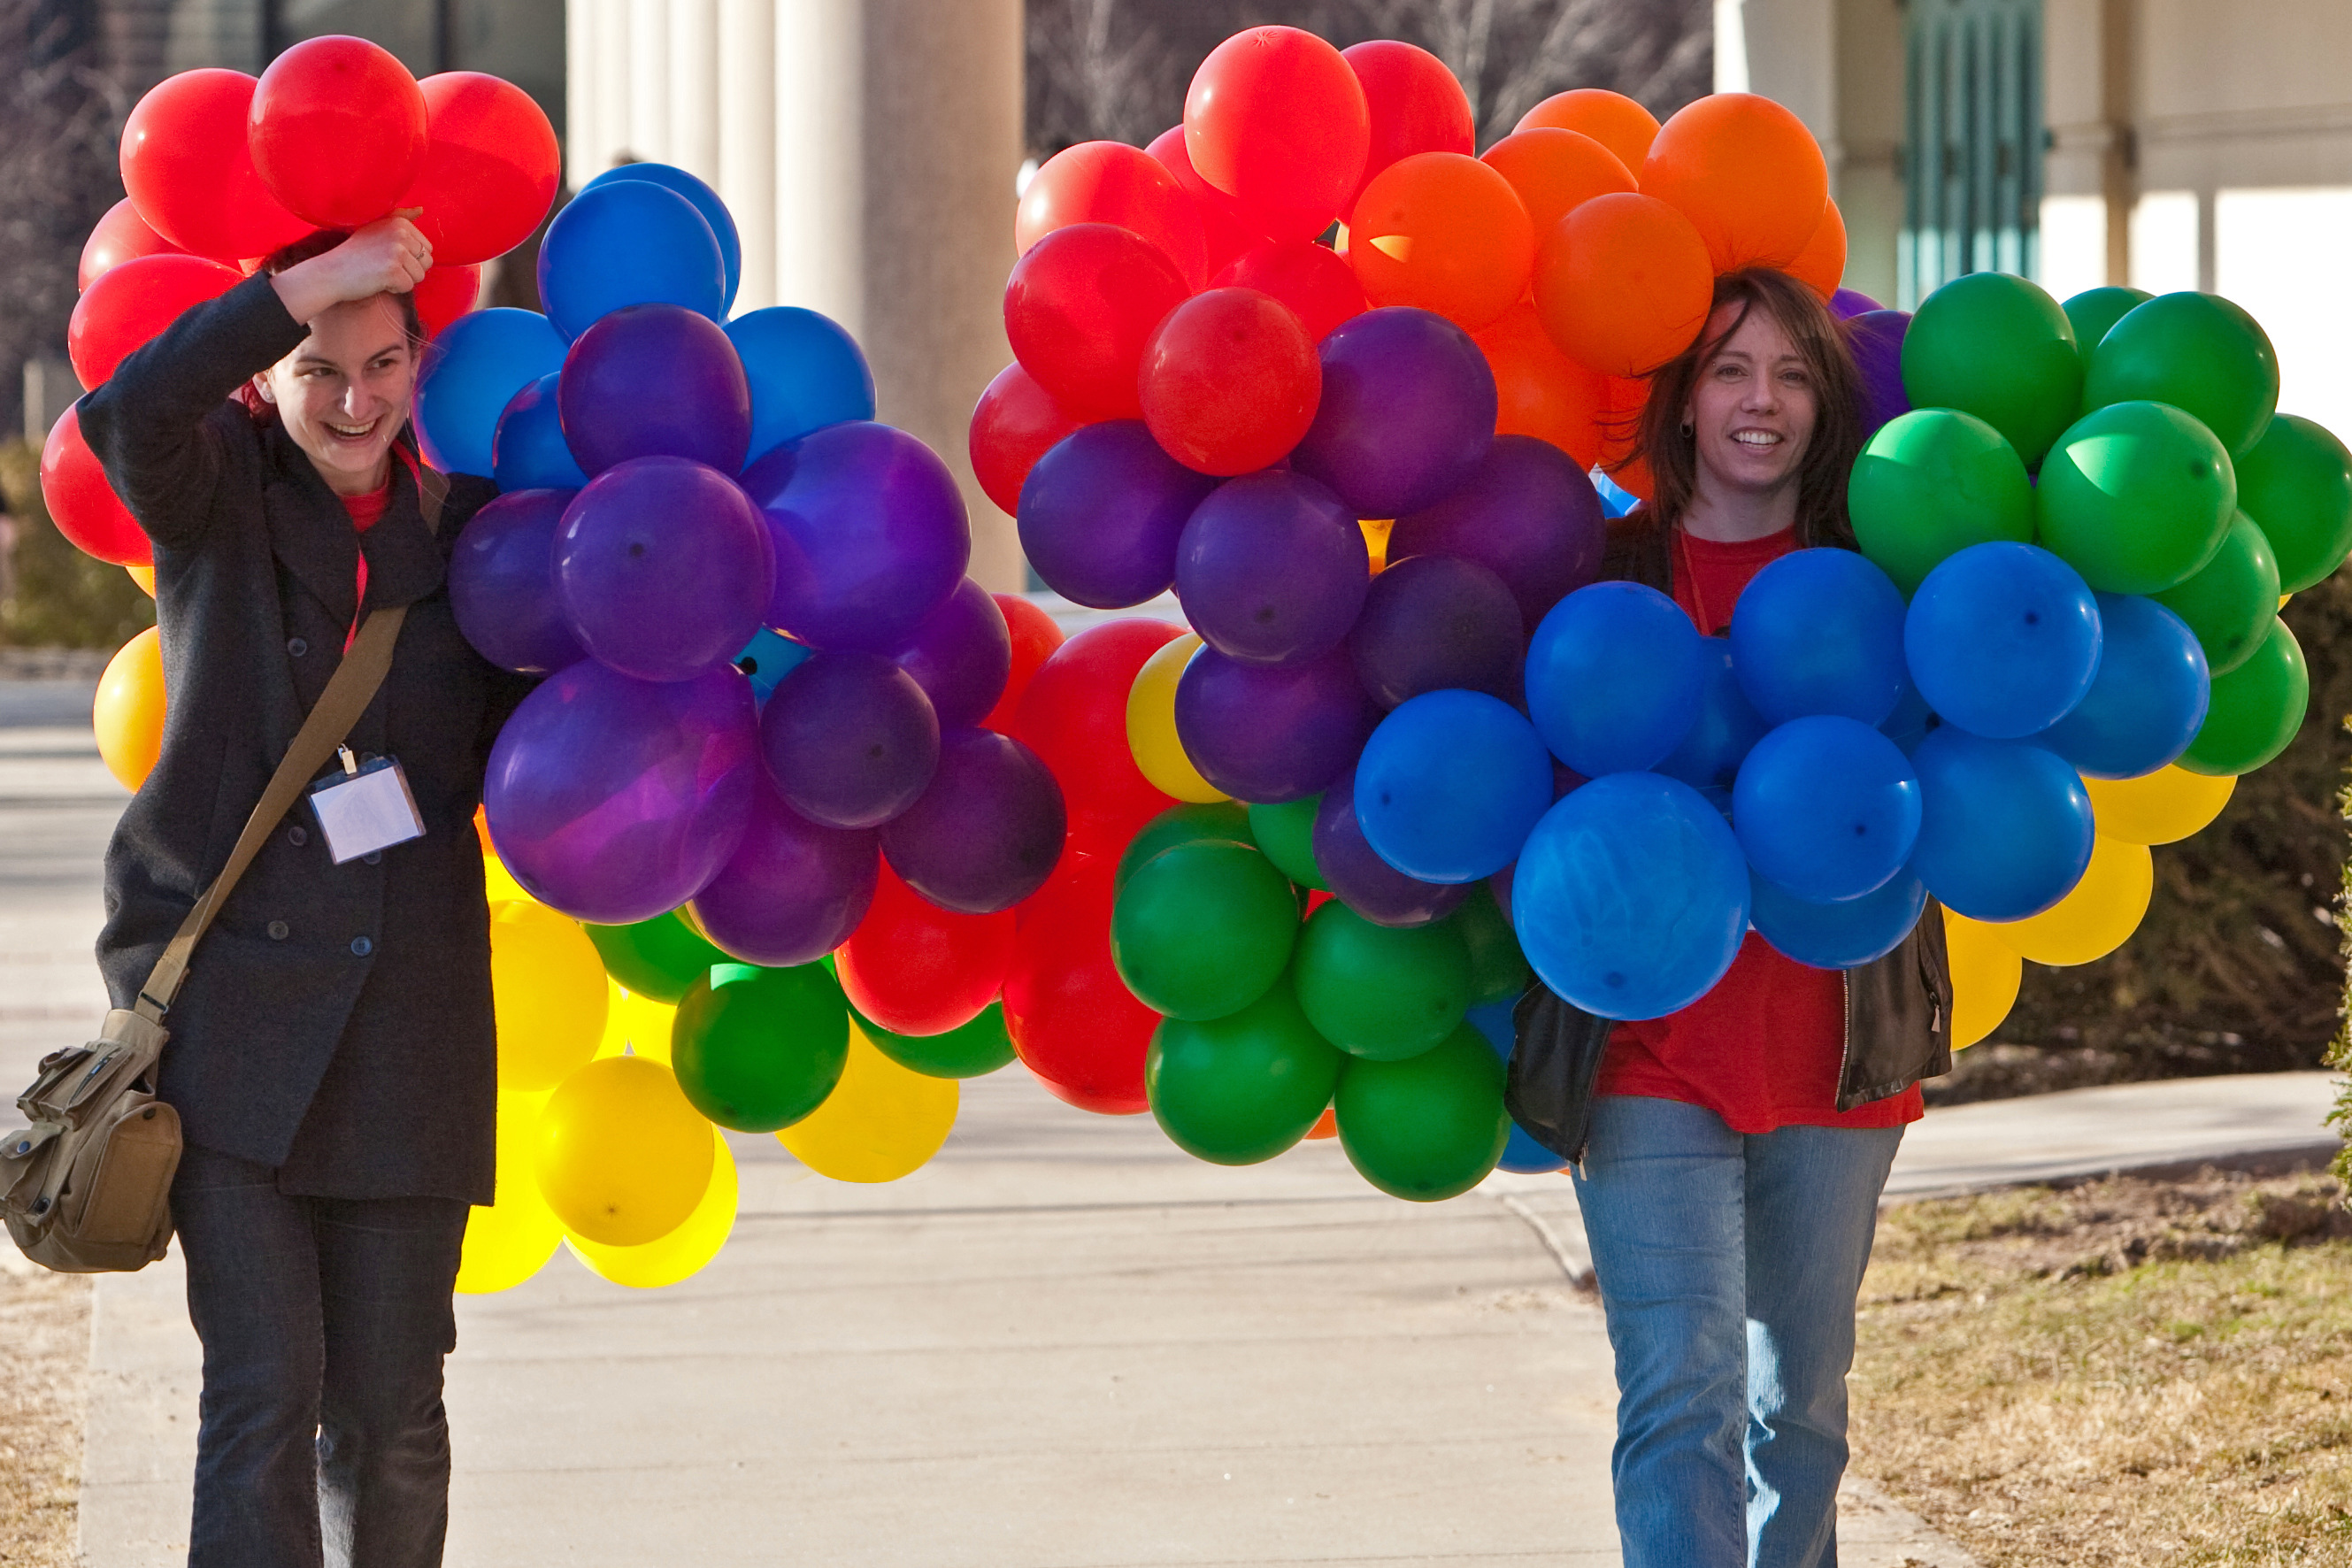 New data show that many LGBTQ teens prefer emerging identity labels, says Ryan Watson, co-author of a study published today. (UConn File Photo)